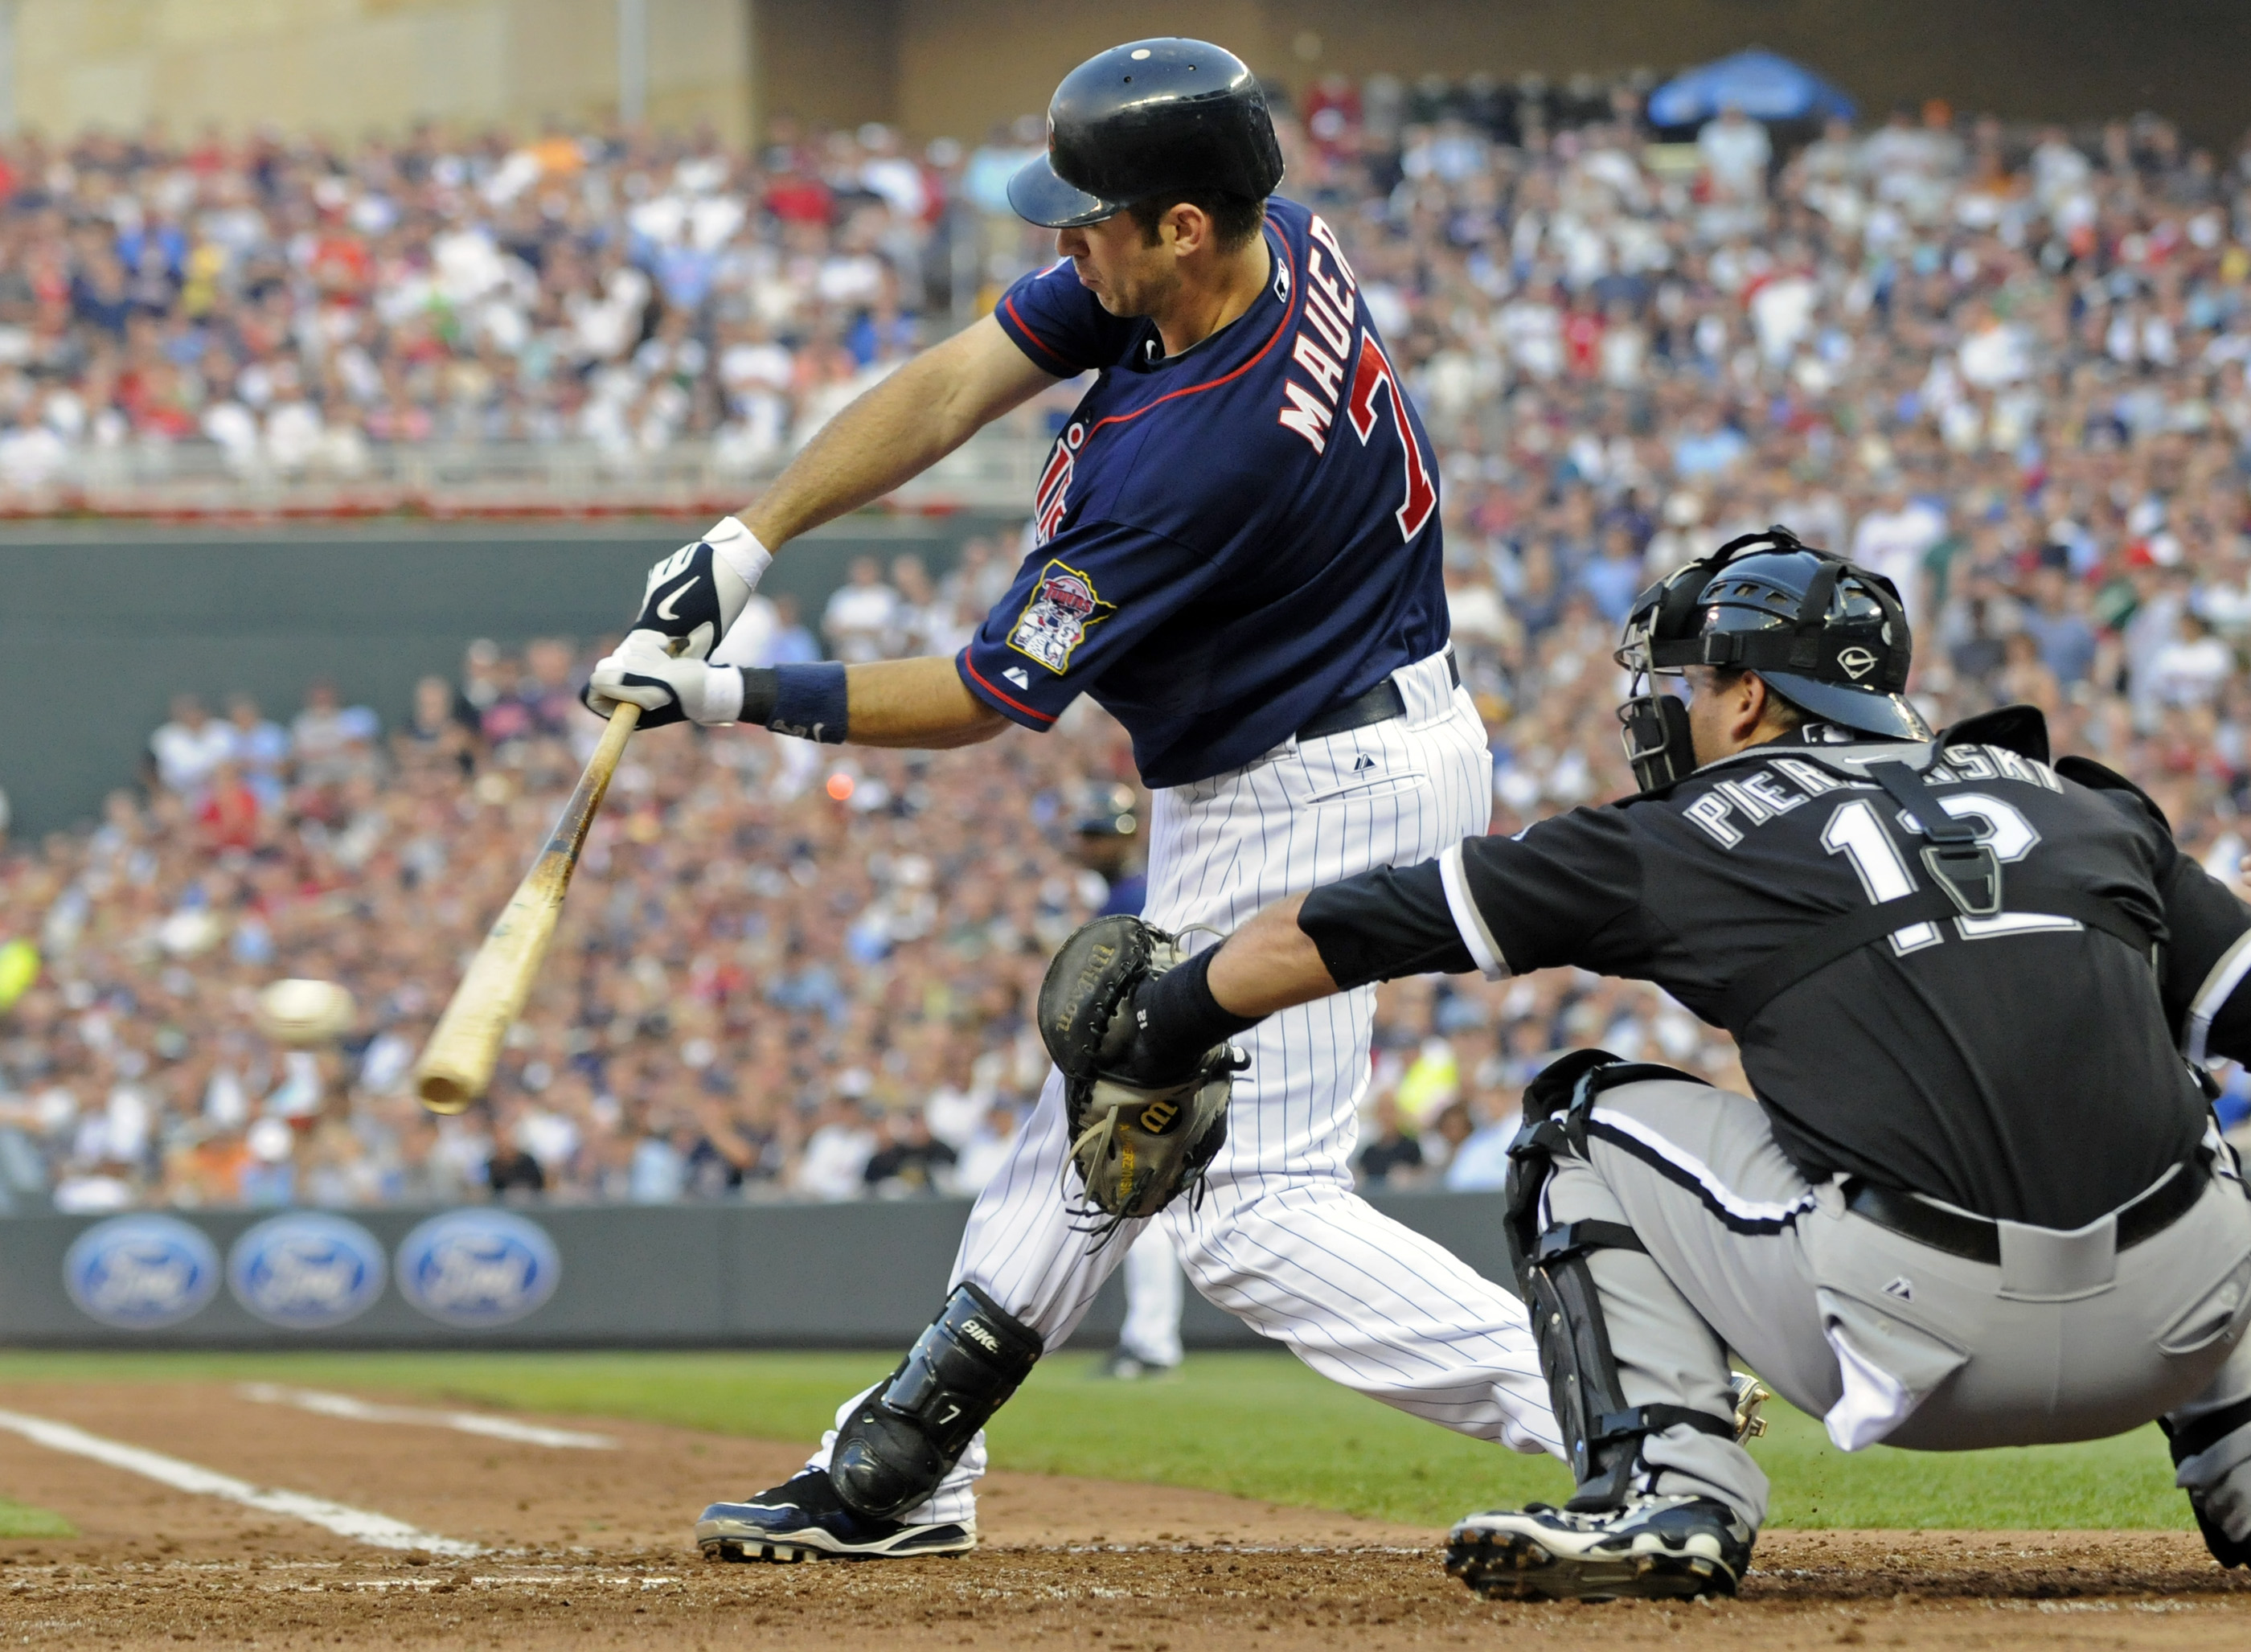 Minnesota Twins' Joe Mauer hits a bases-loaded double off Chicago White Sox pitcher John Danks in the second inning of a baseball game on Thursday in ...